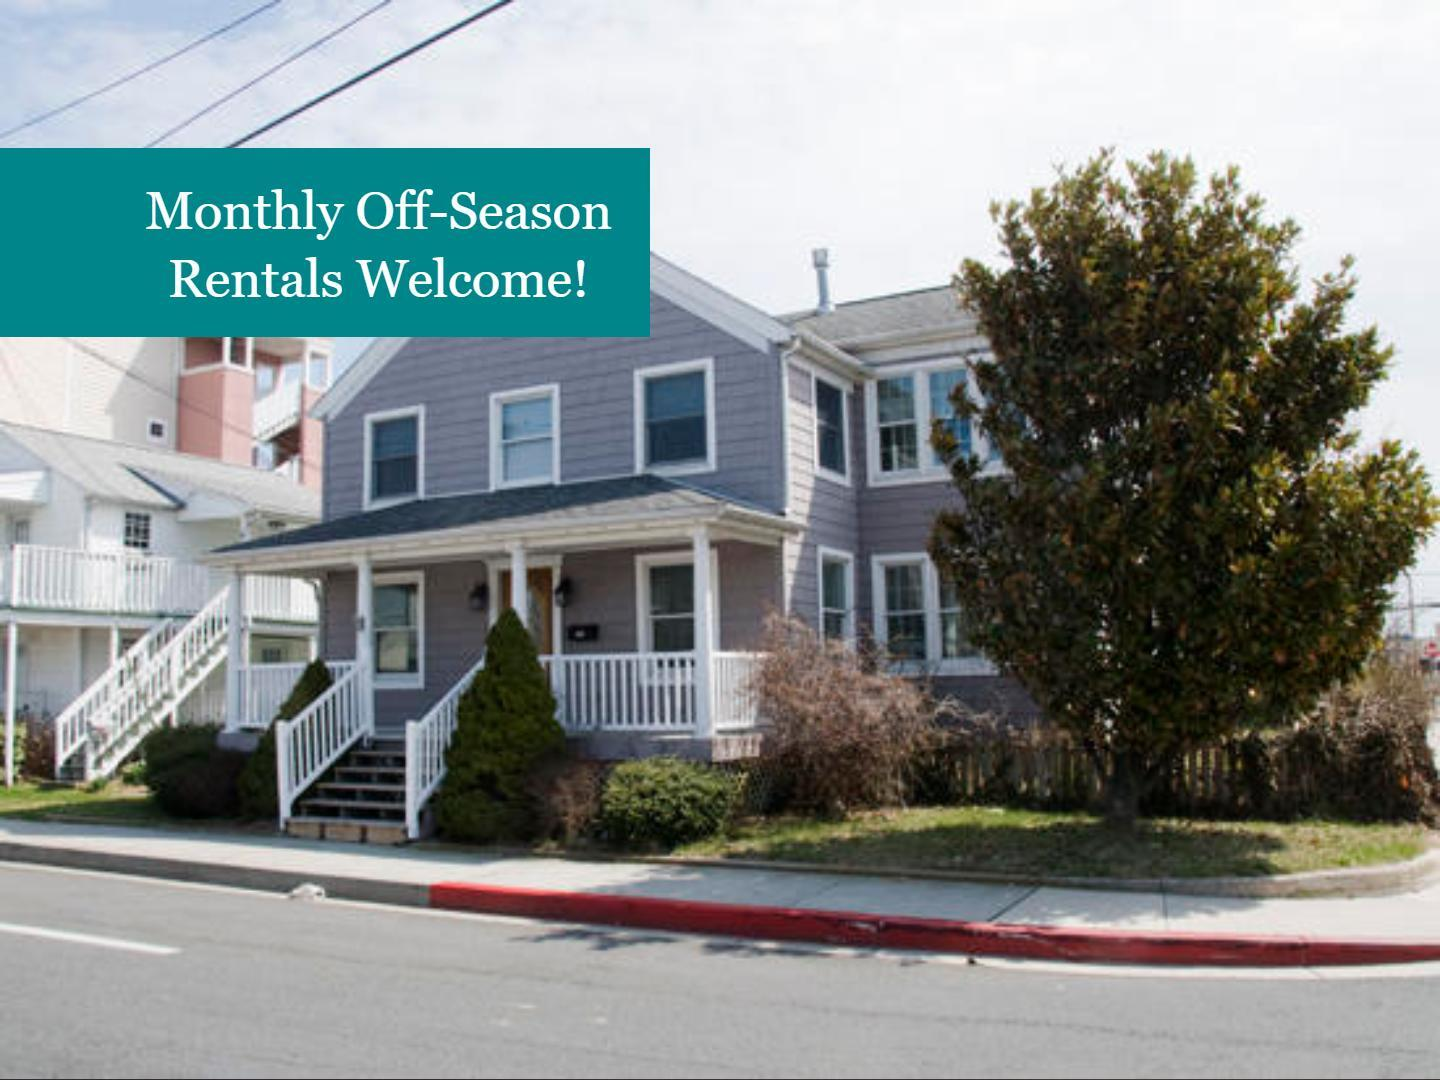 Monthly Winter Rentals Available